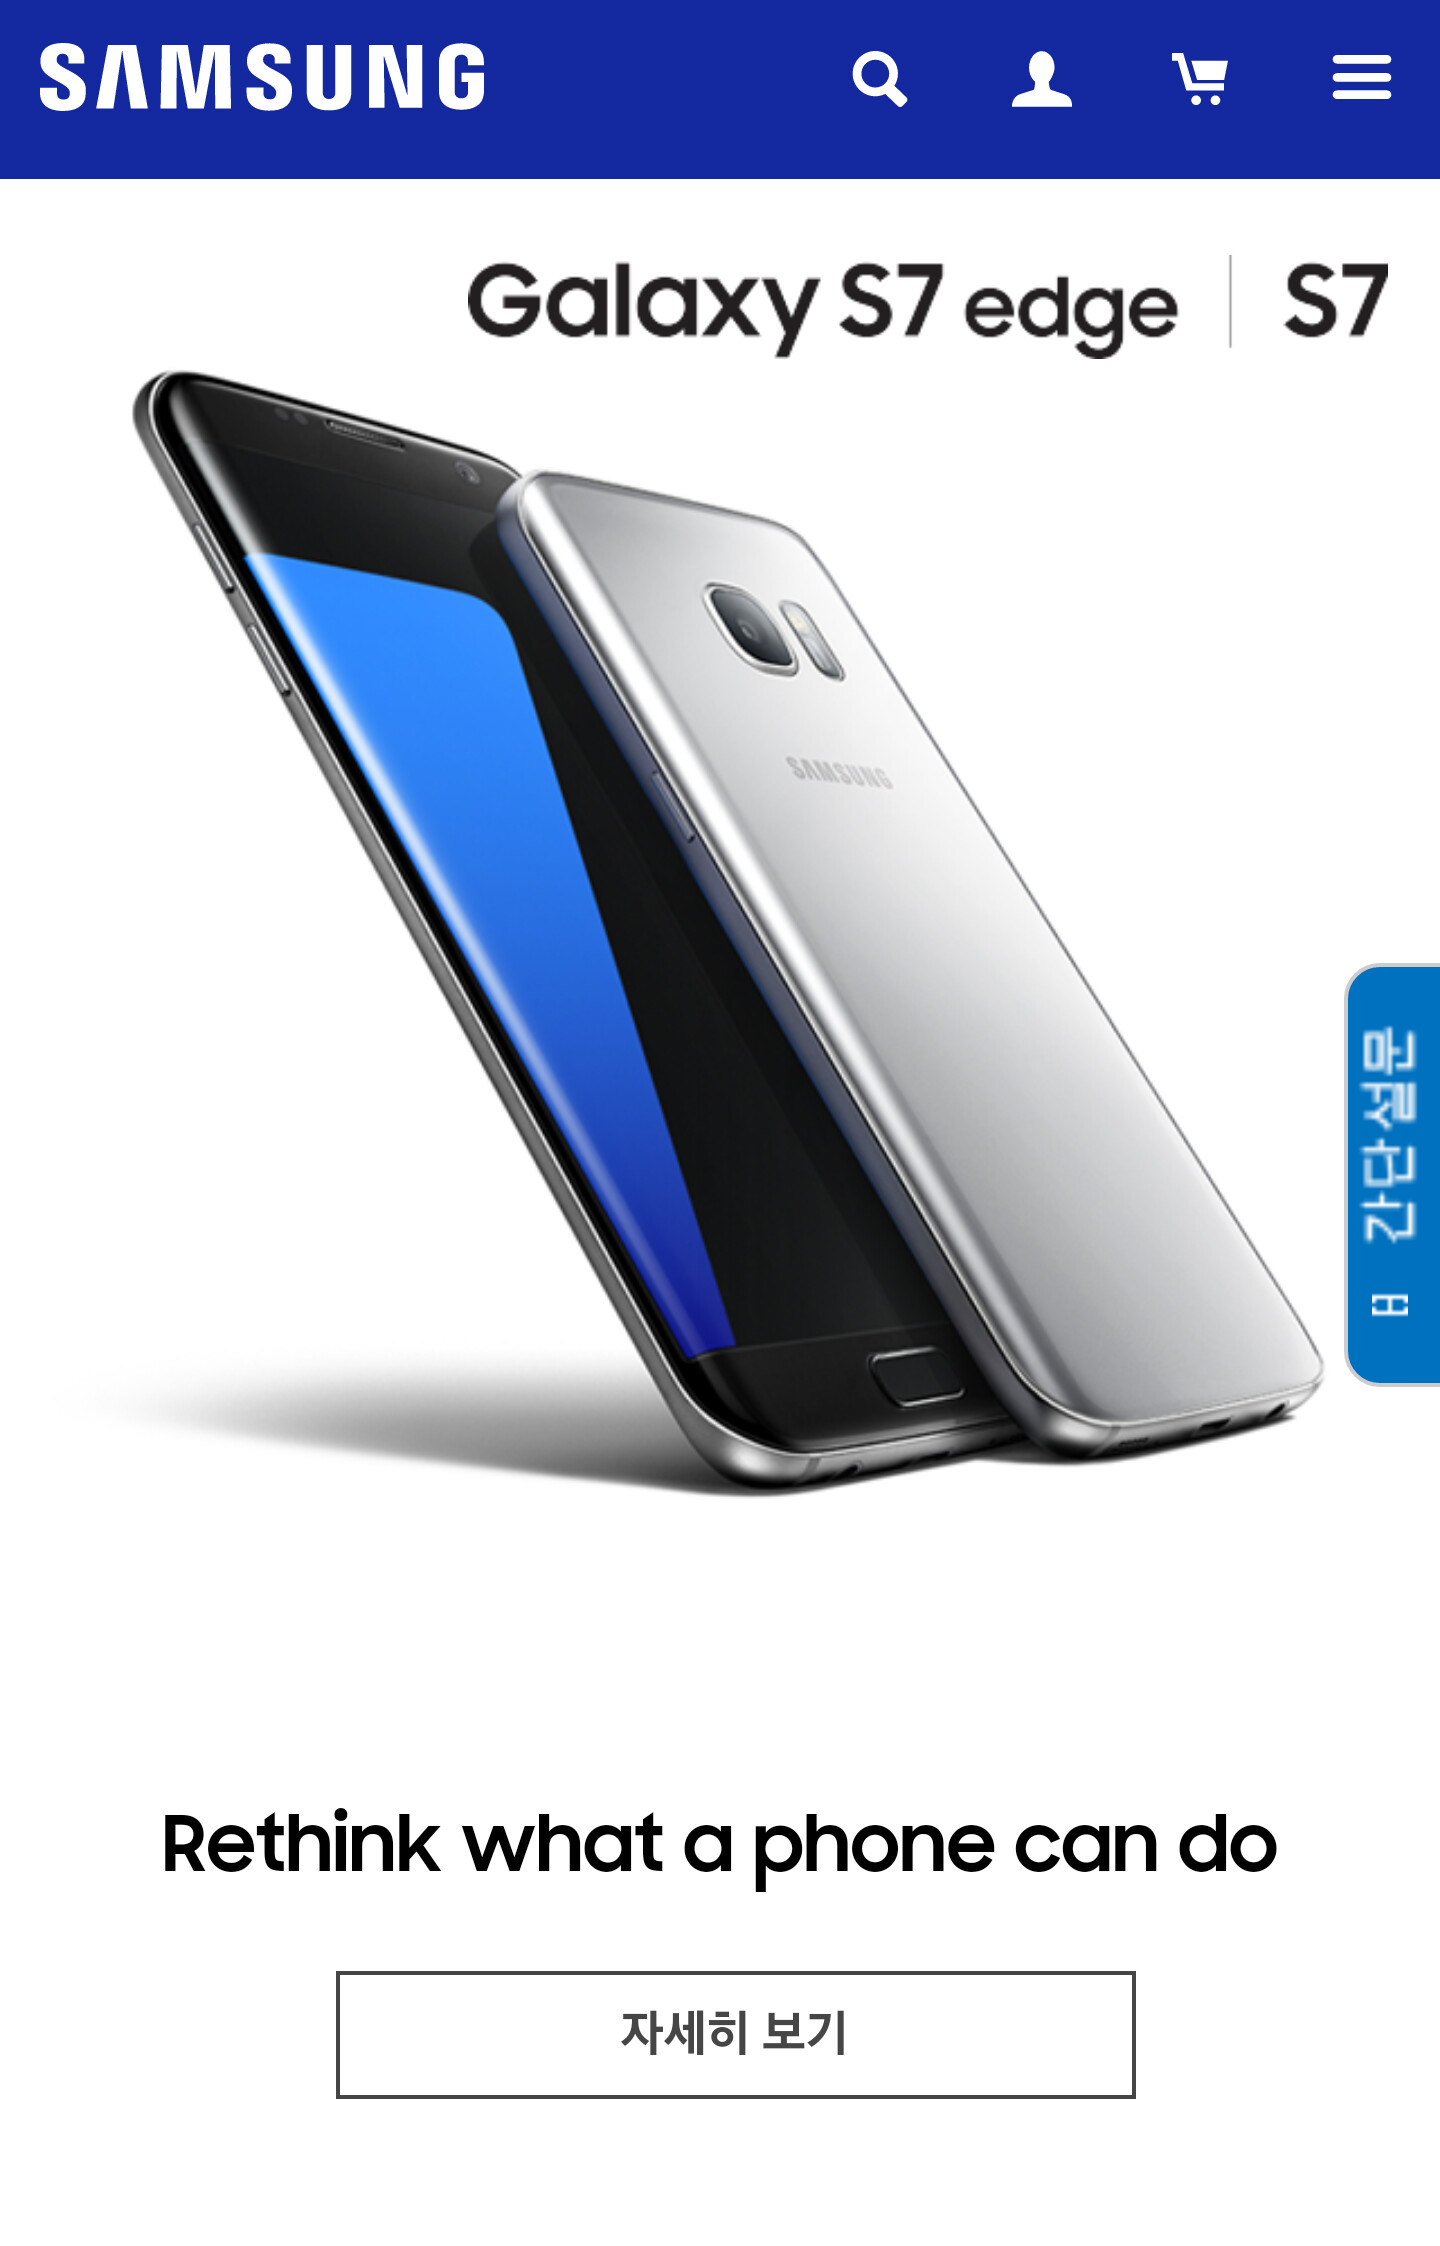 curious samsung to remove its logo from the front of galaxy s7 edge units sold in china and. Black Bedroom Furniture Sets. Home Design Ideas